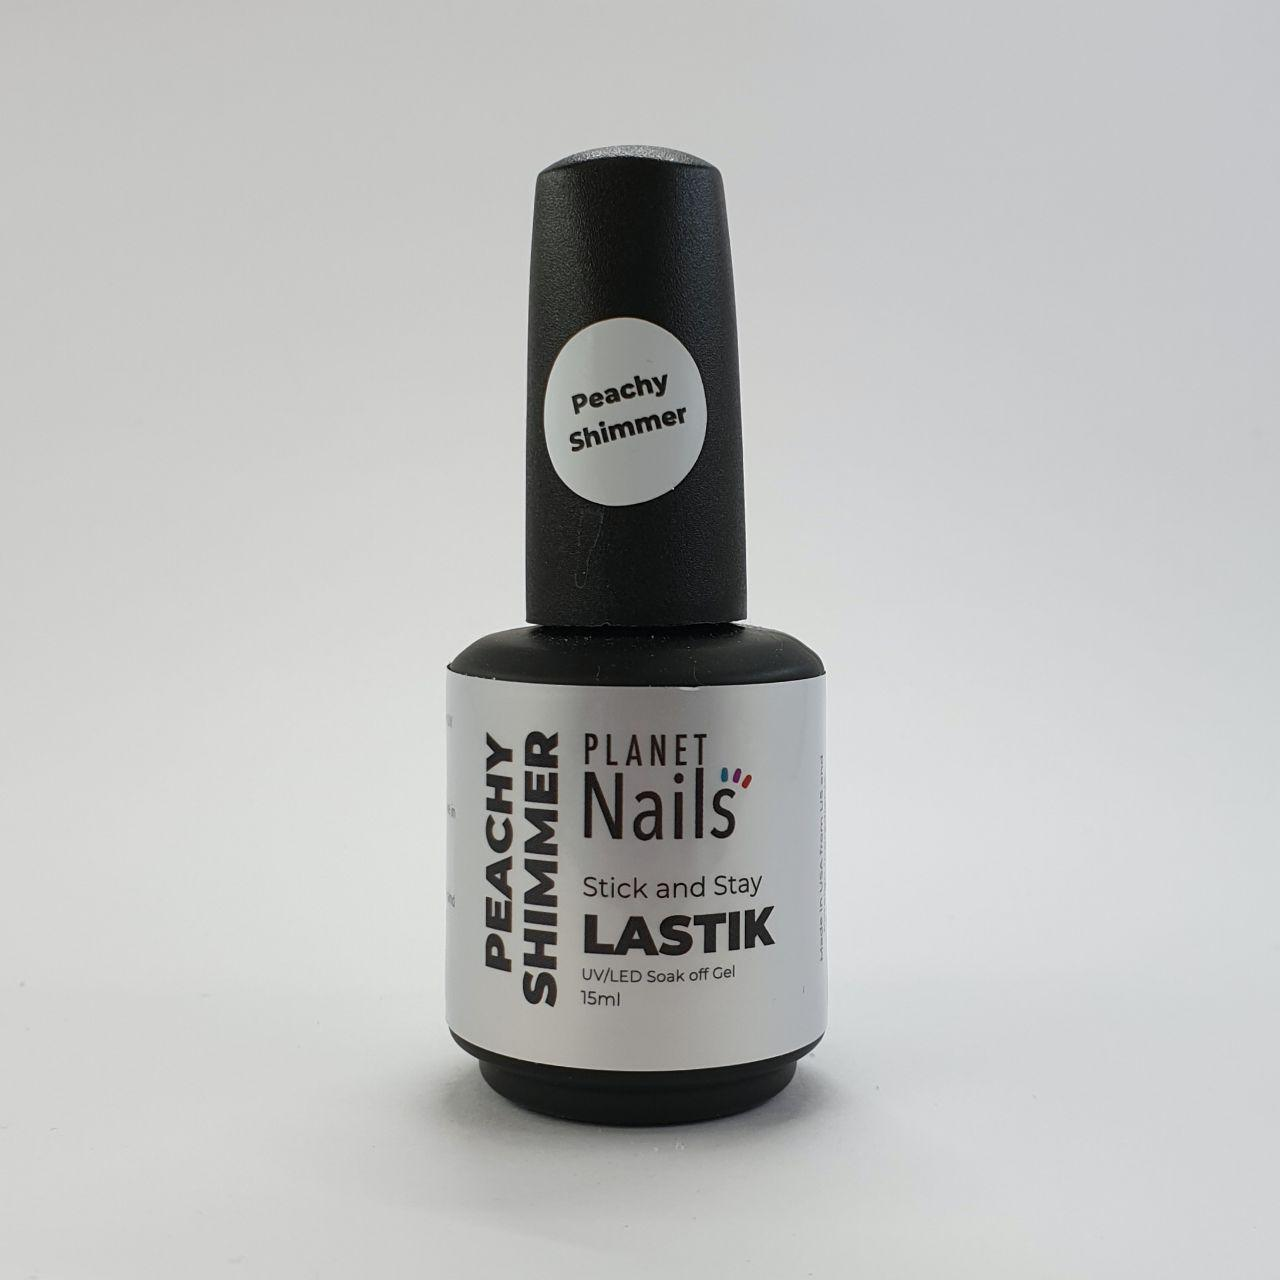 Lastik - Stick and stay - Soak off gel - 15ml